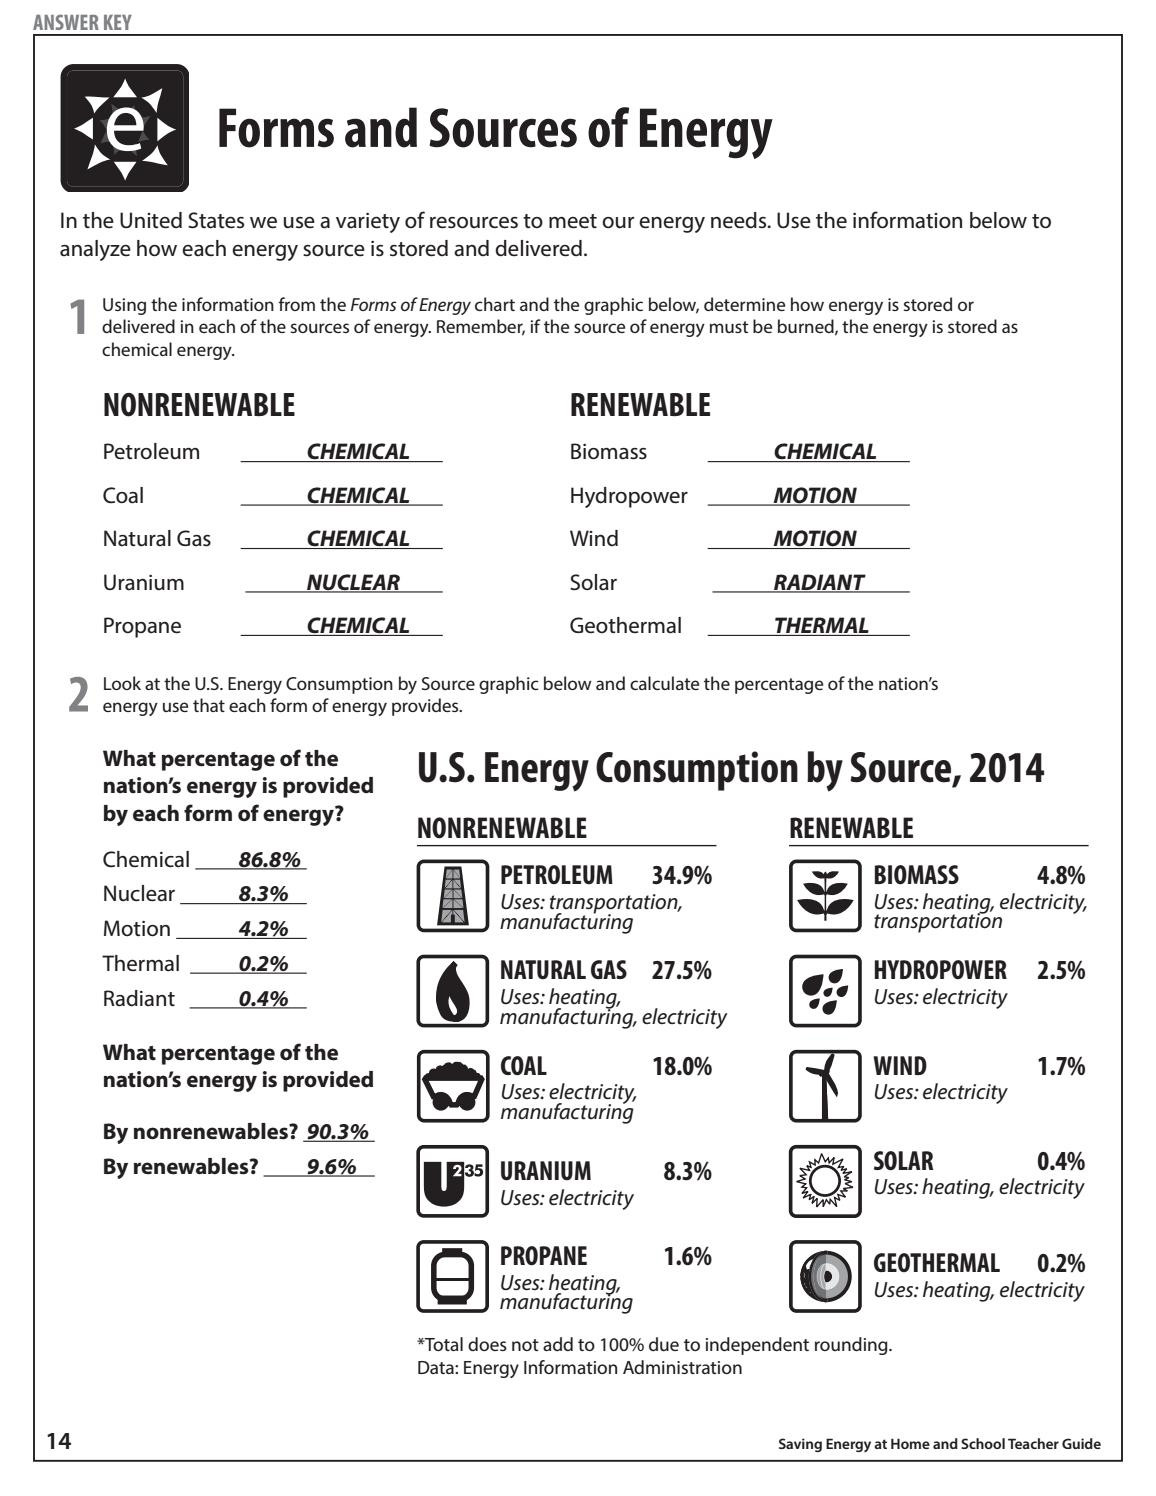 Forms Of Energy Worksheet Answers Saving Energy Teacher Guide by Need Project issuu